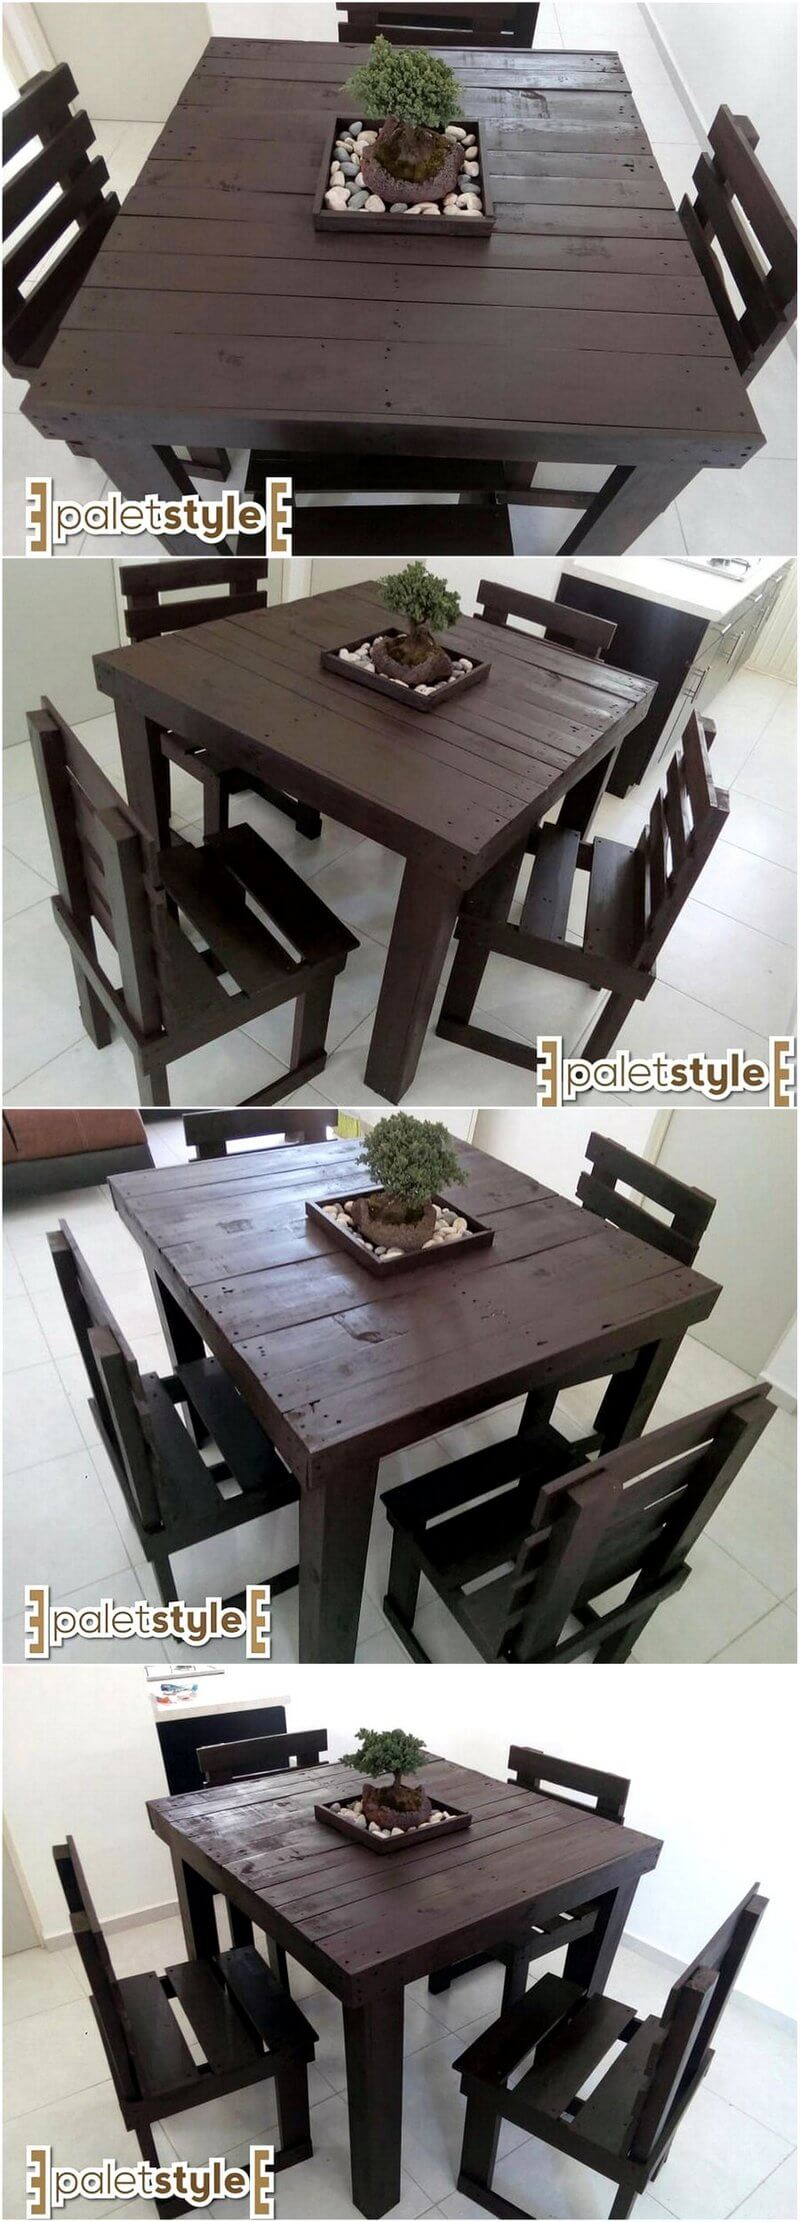 reused pallet furniture set